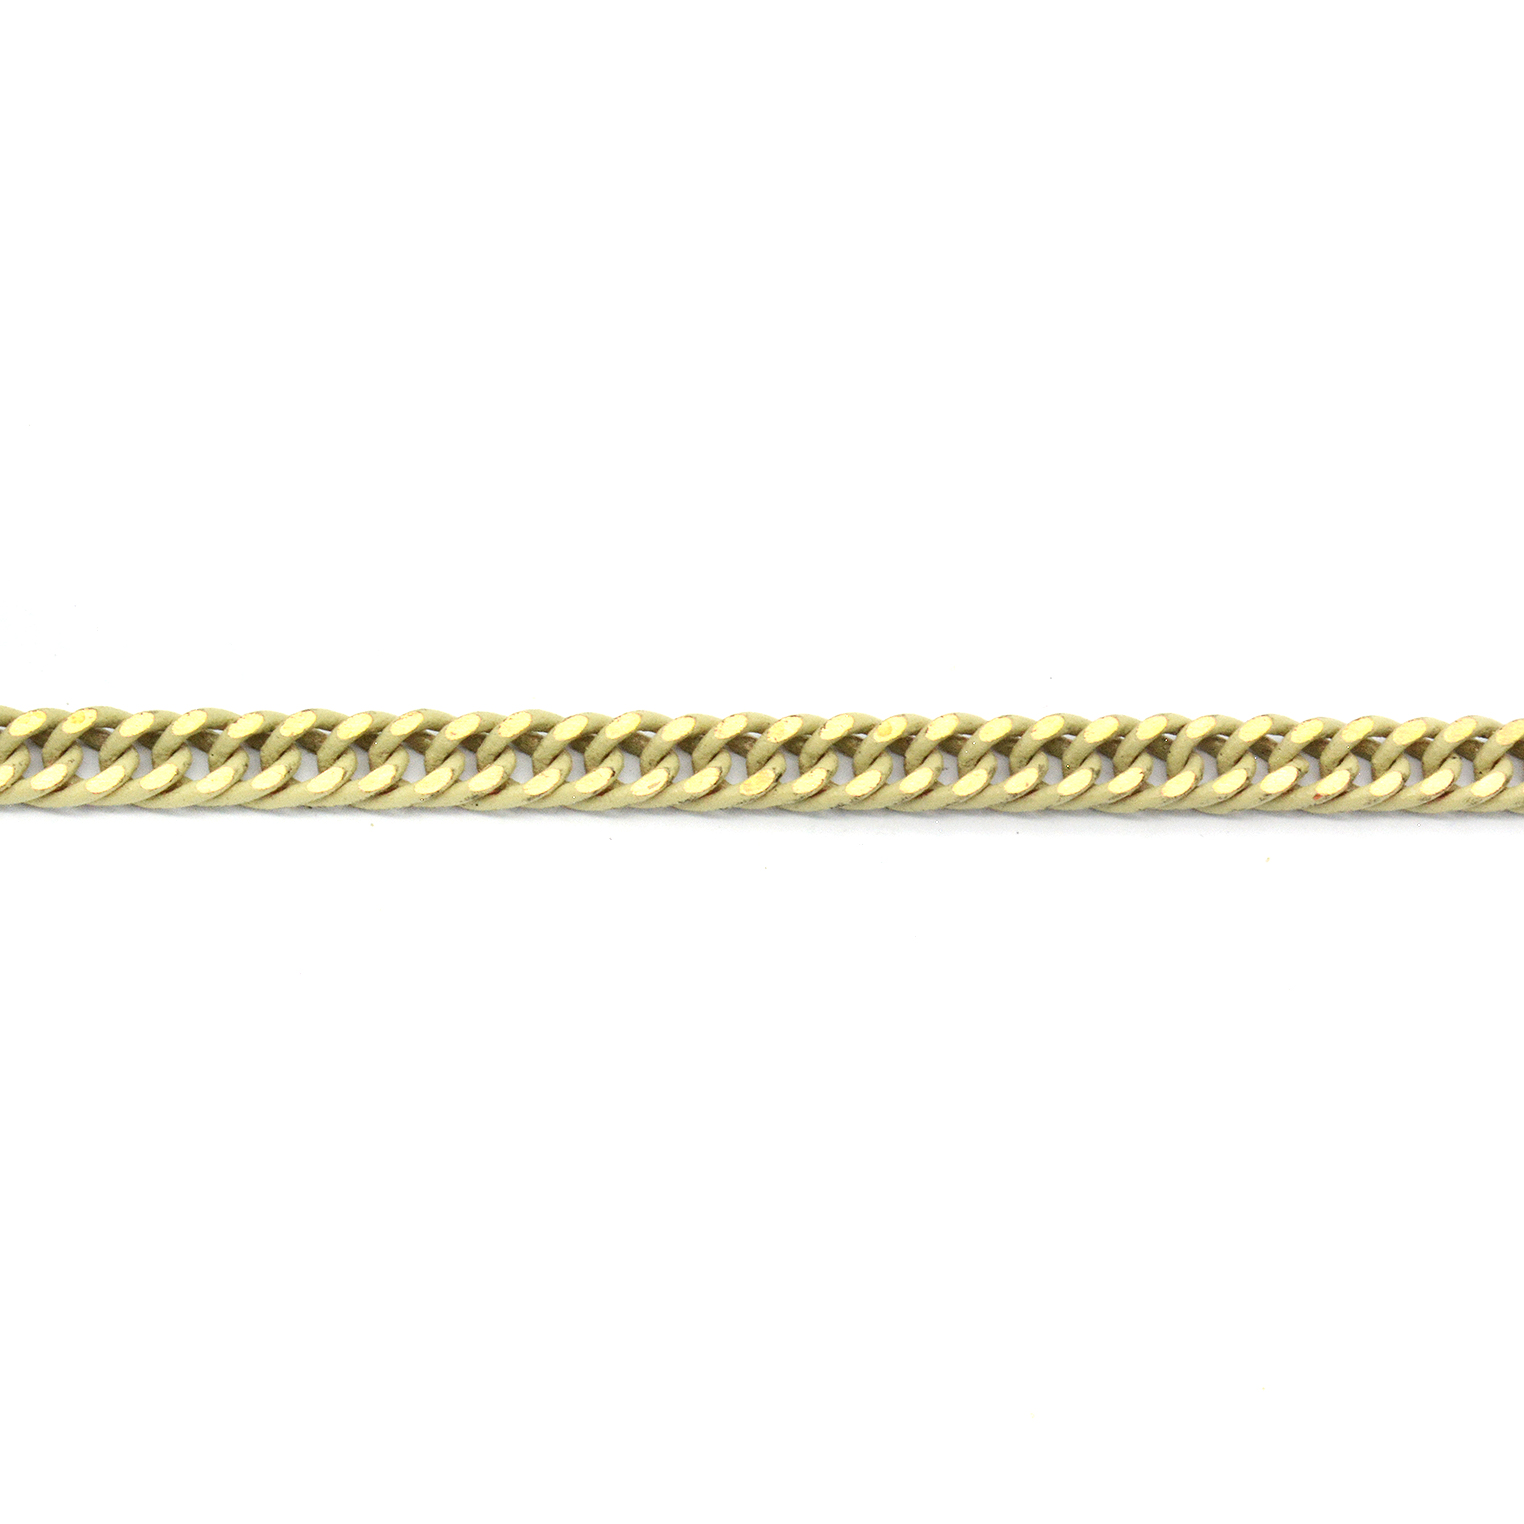 Polished Cream enamel stainless steel curb (gourmette) chain 4mm